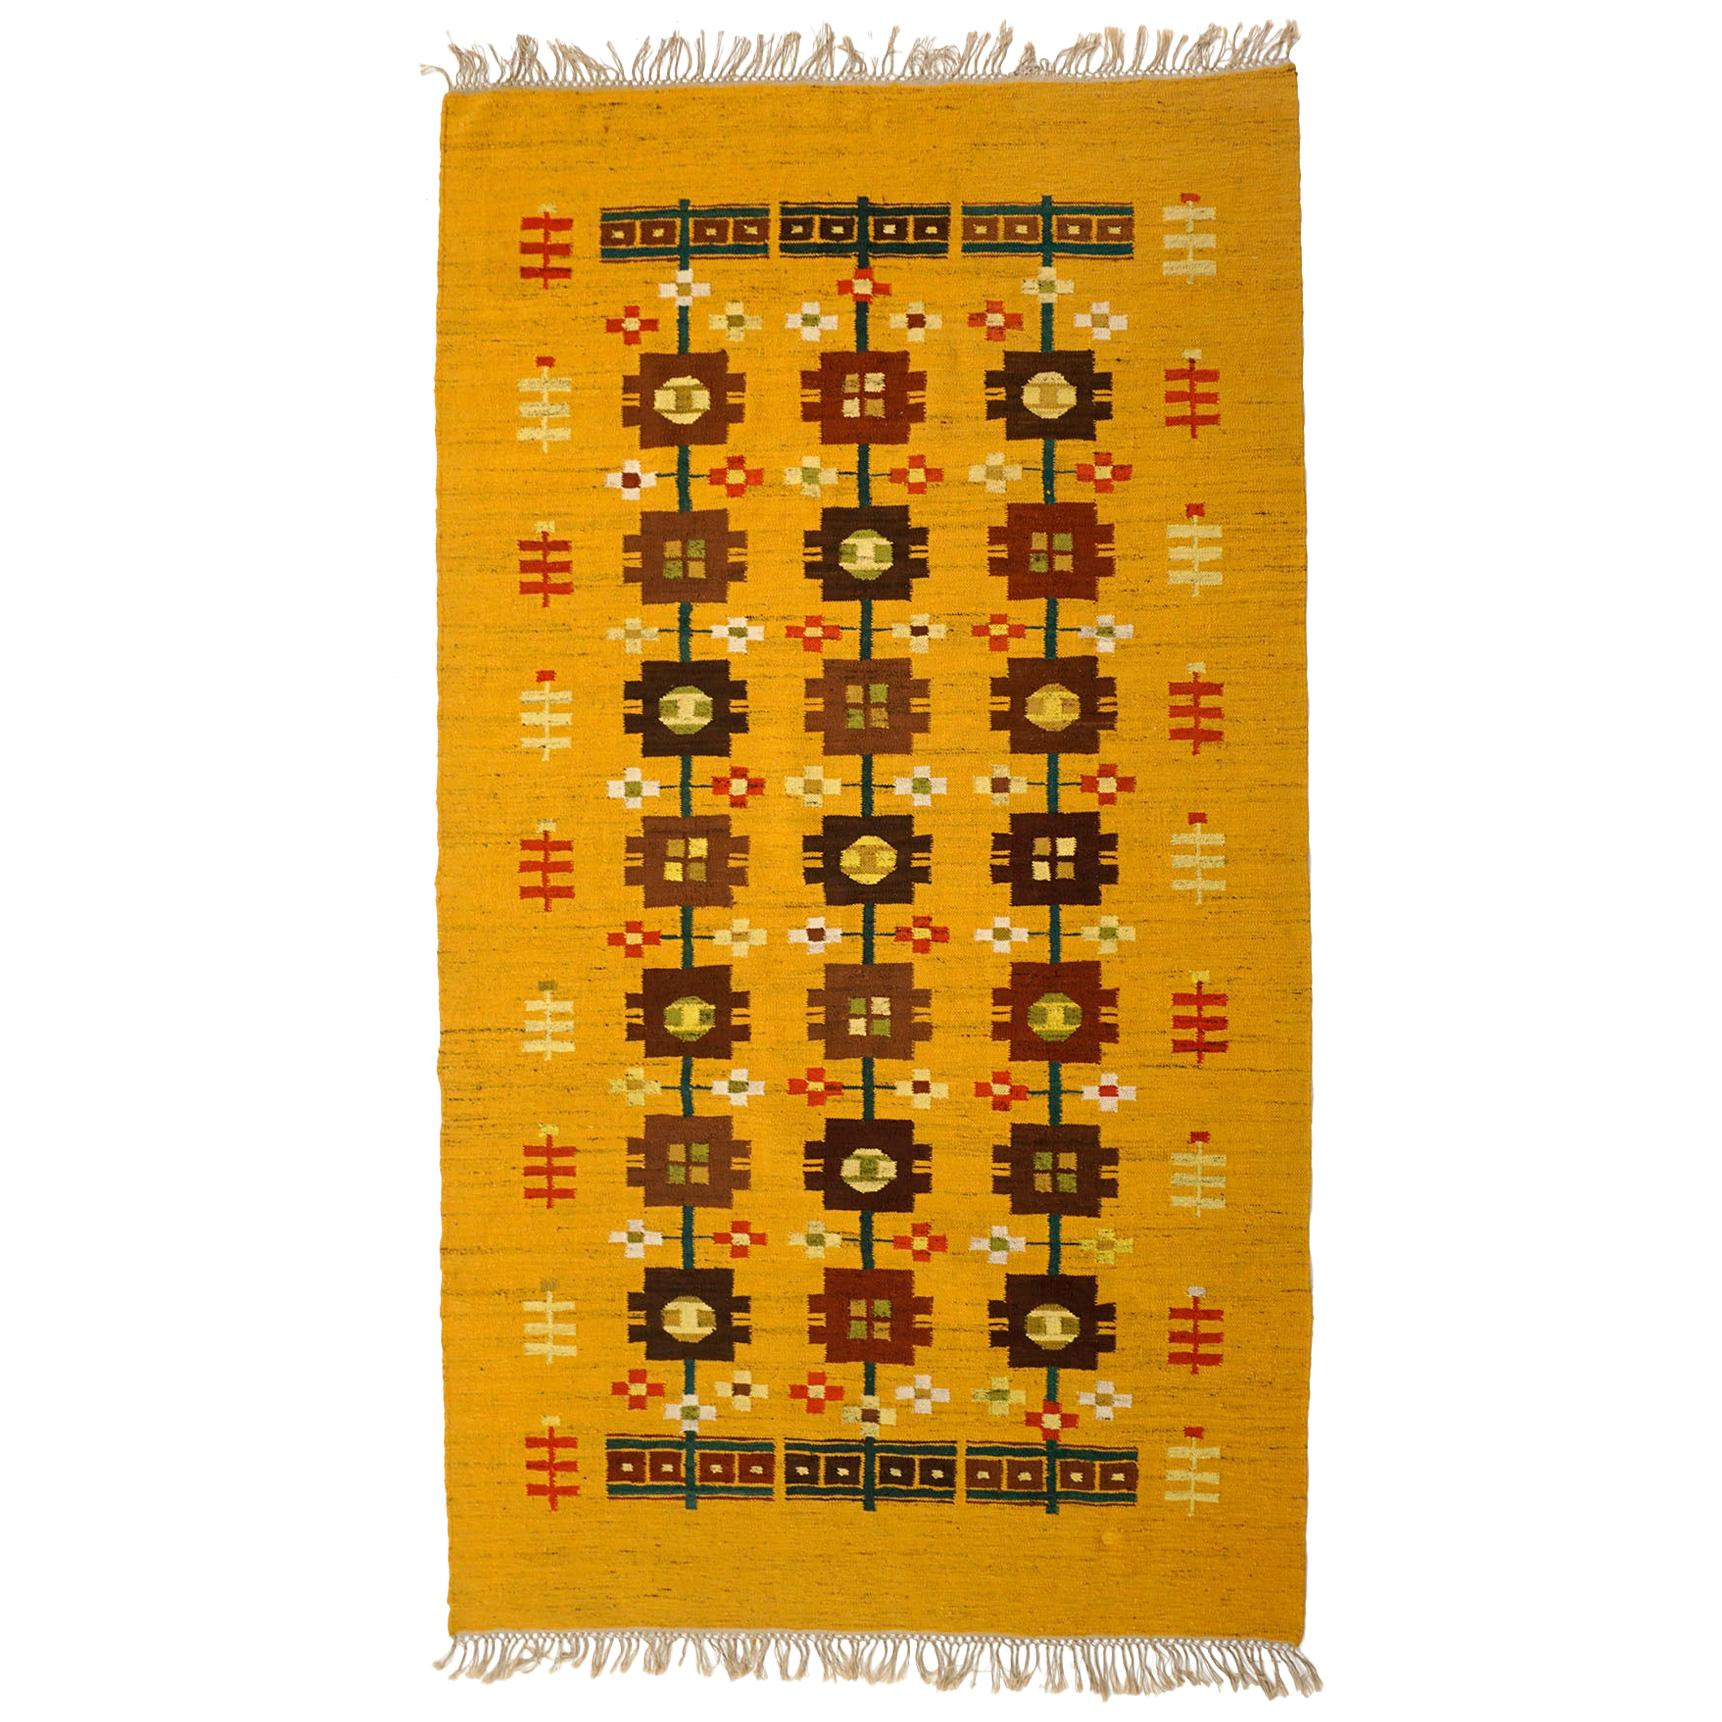 Handwoven Rug / Tapestry by Cepelia, Poland